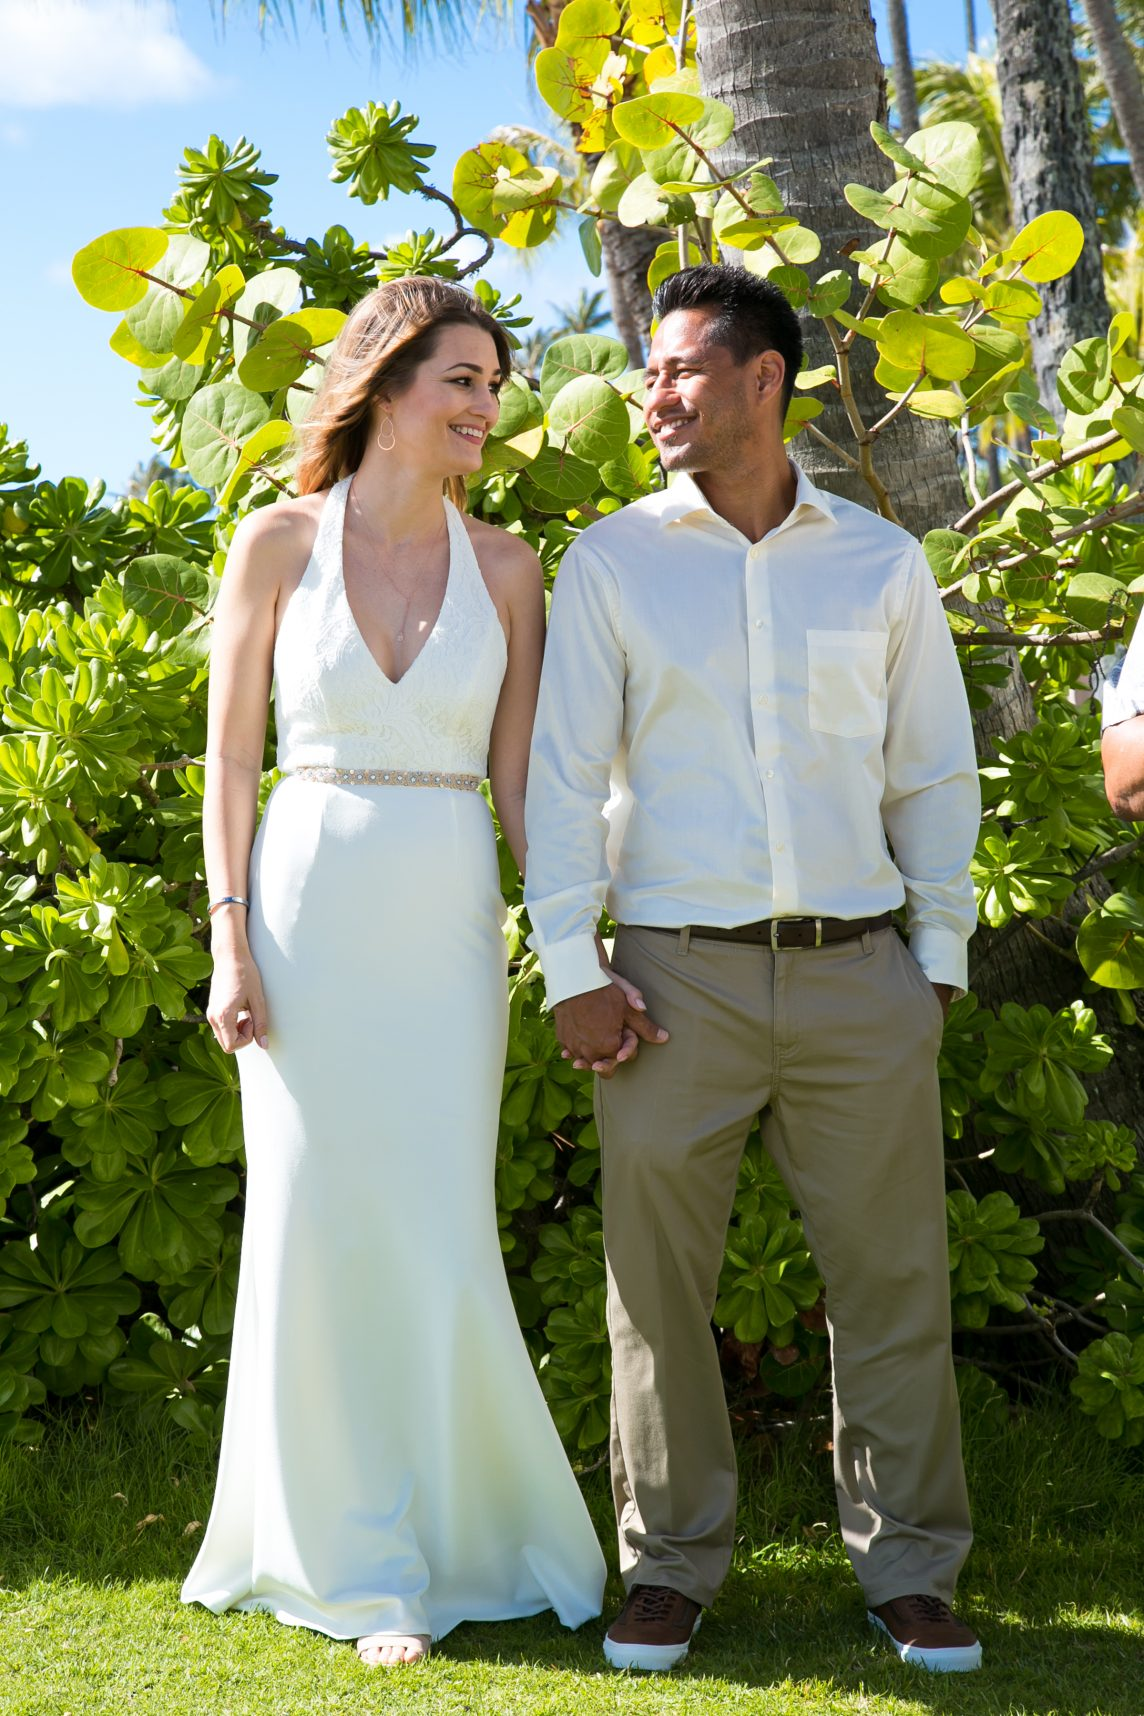 Bride & Groom Beach Wedding Wear